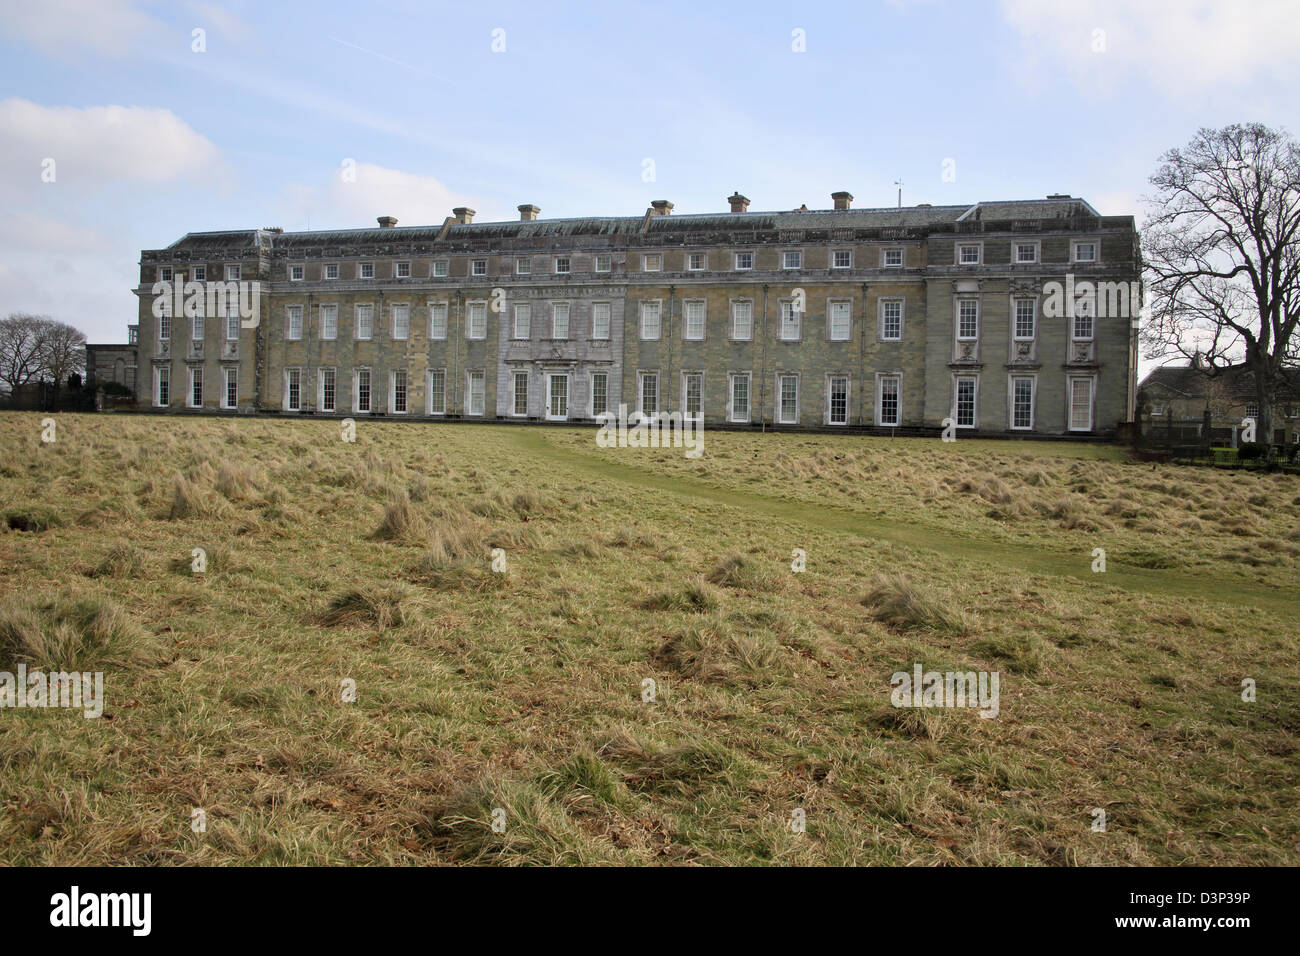 petworth house and gardens in west sussex - Stock Image